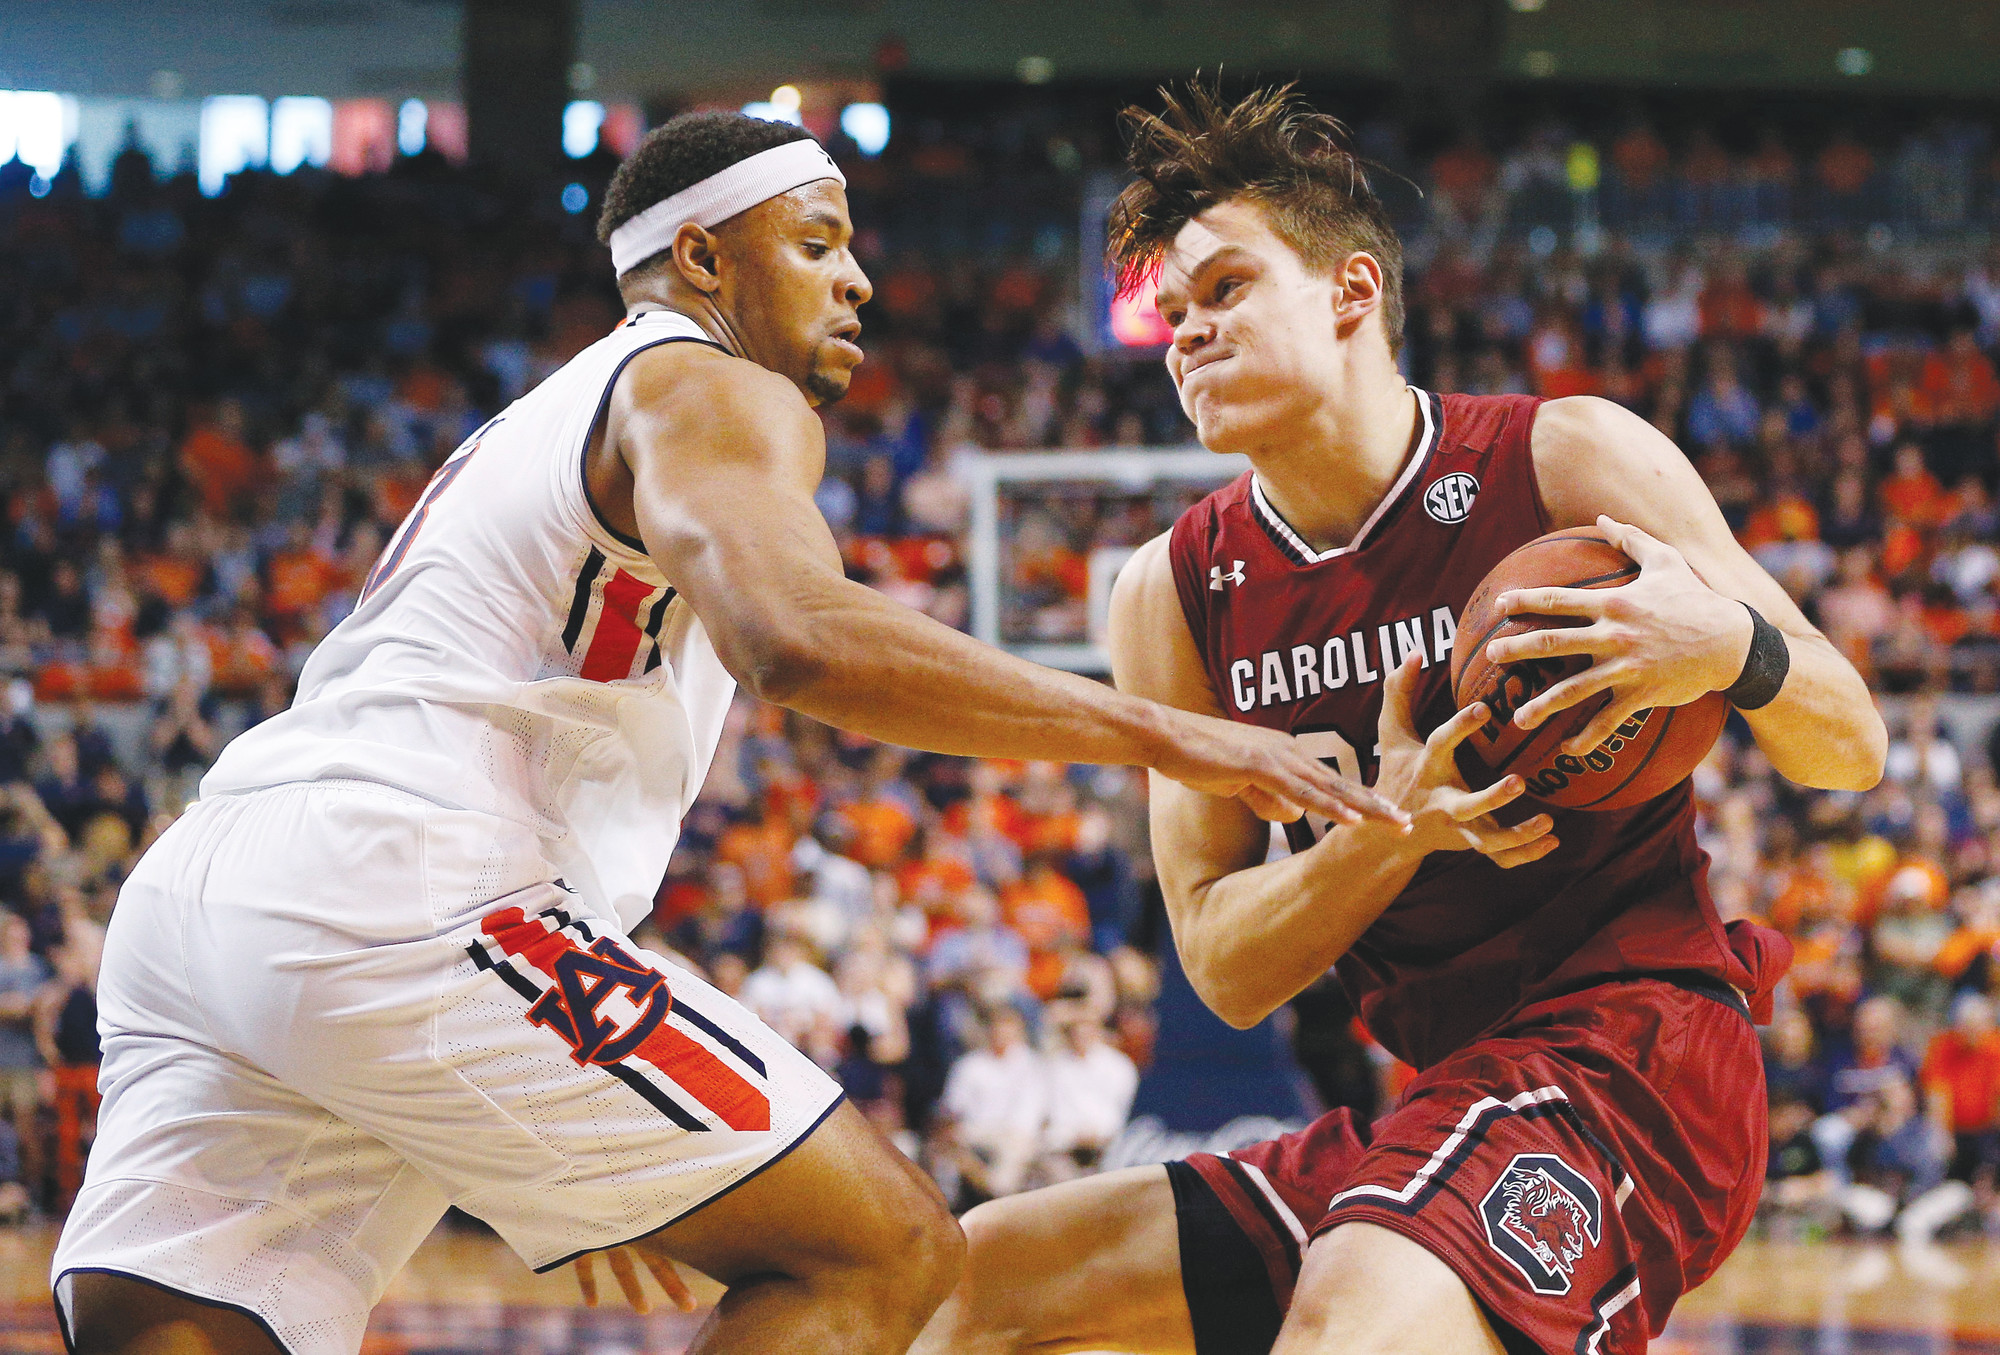 South Carolina forward Maik Kotsar, right, drives the ball to the basket against Auburn forward Desean Murray during the first half of Auburn's victory over the Gamecocks on Saturday in Auburn, Alabama.